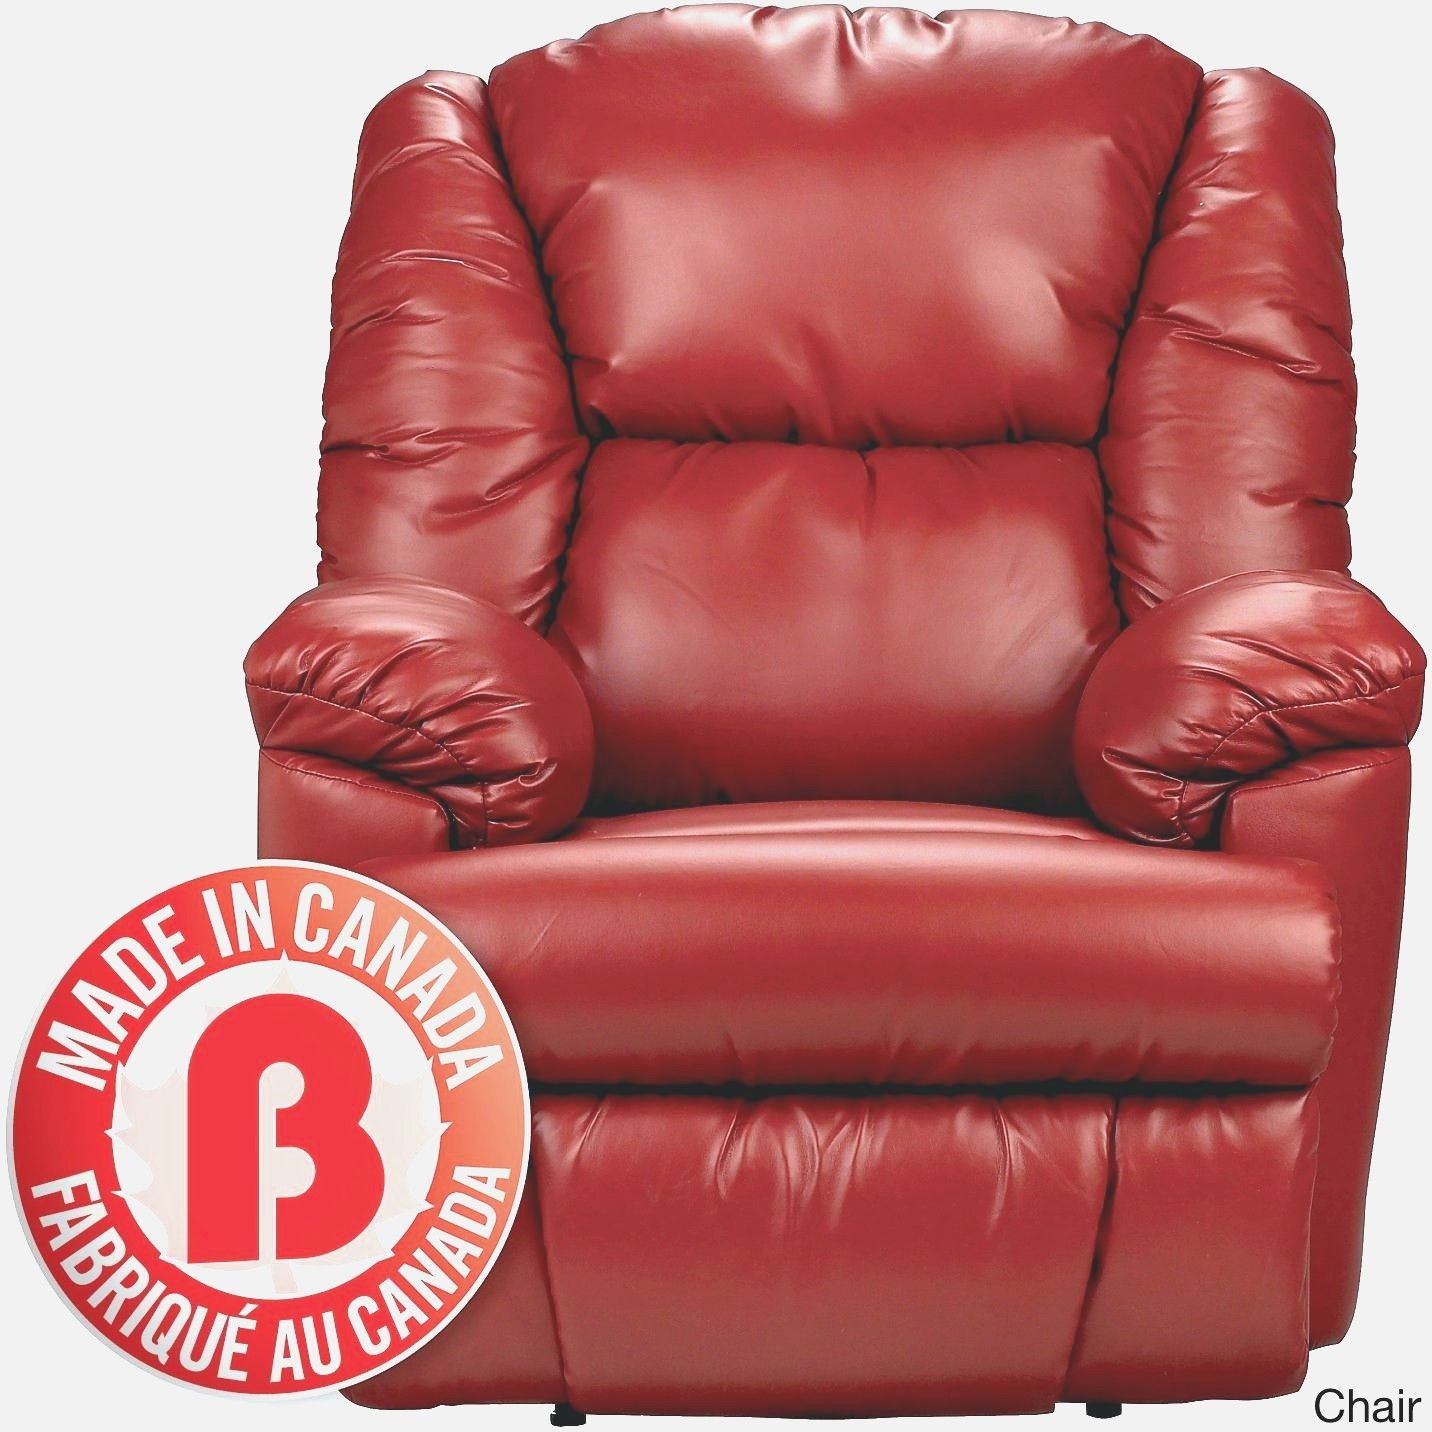 chairs recliners theatre recliner interior of home reclining unique sofas leather chair lift awesome costco rocker theater swivel seating